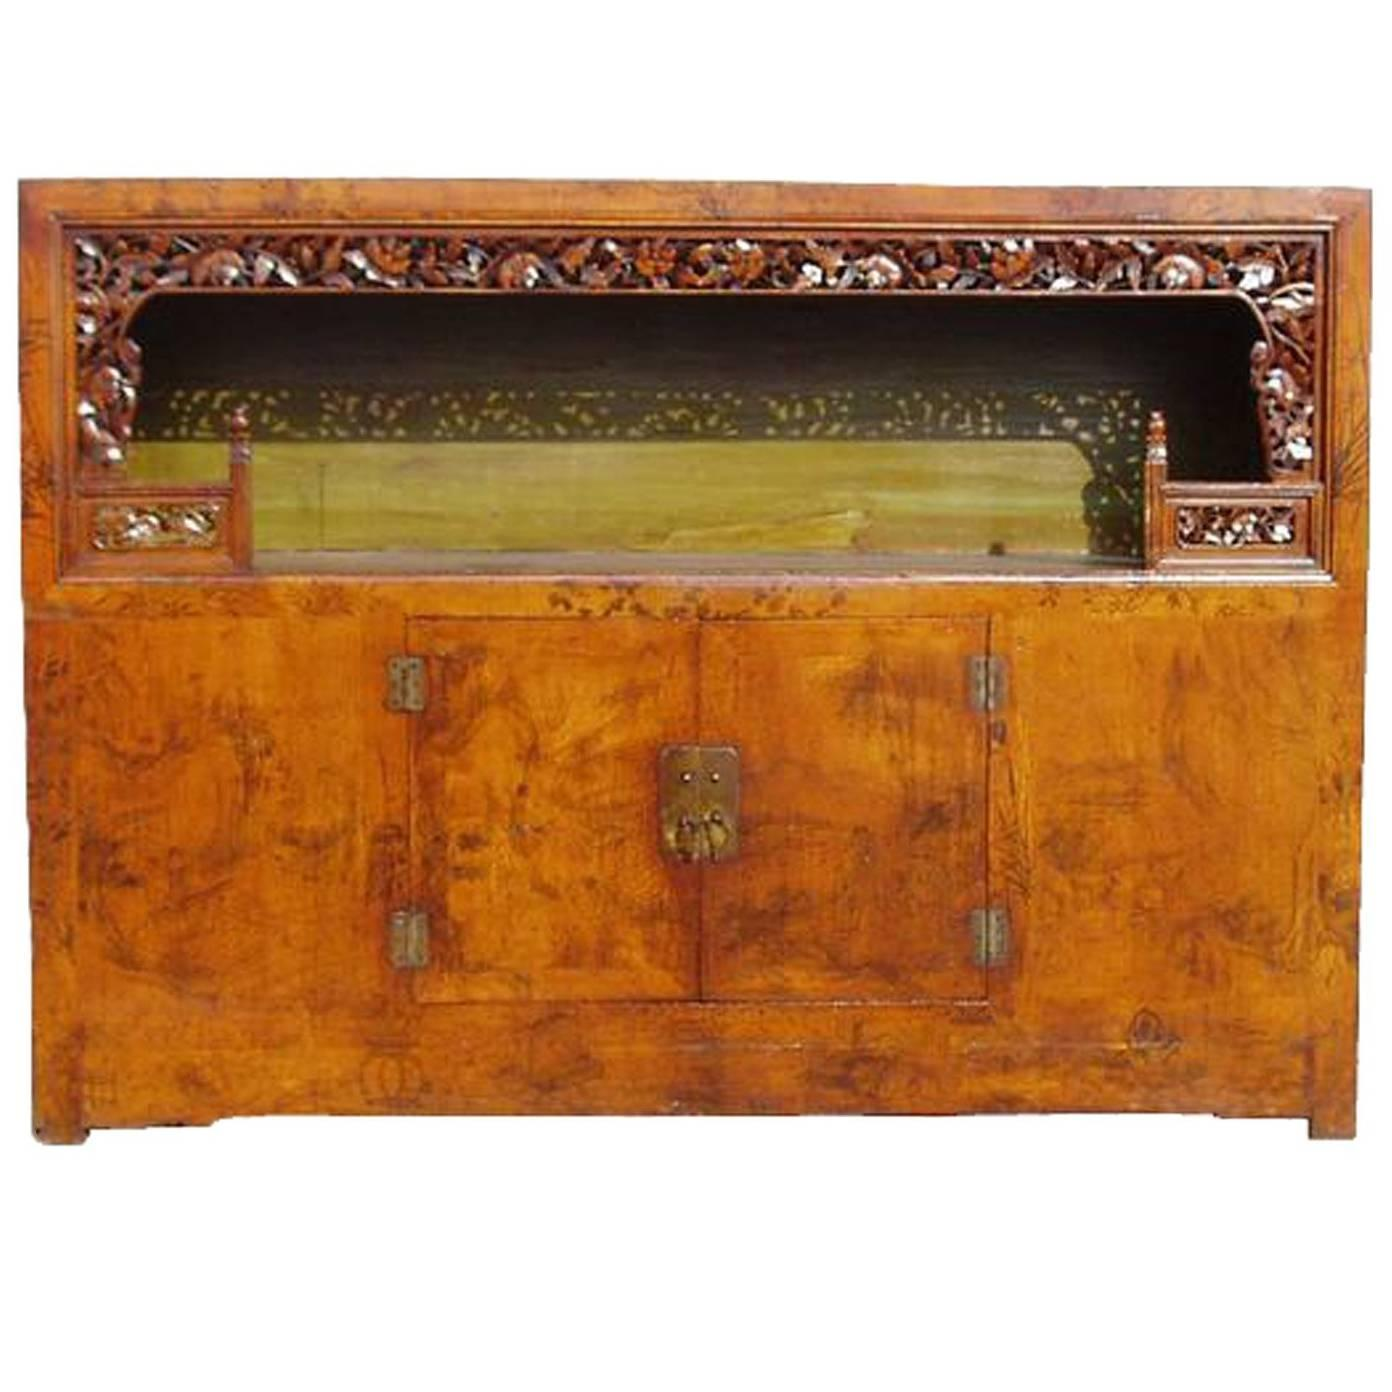 Chinese Antique Scholar's Chest Bookcase